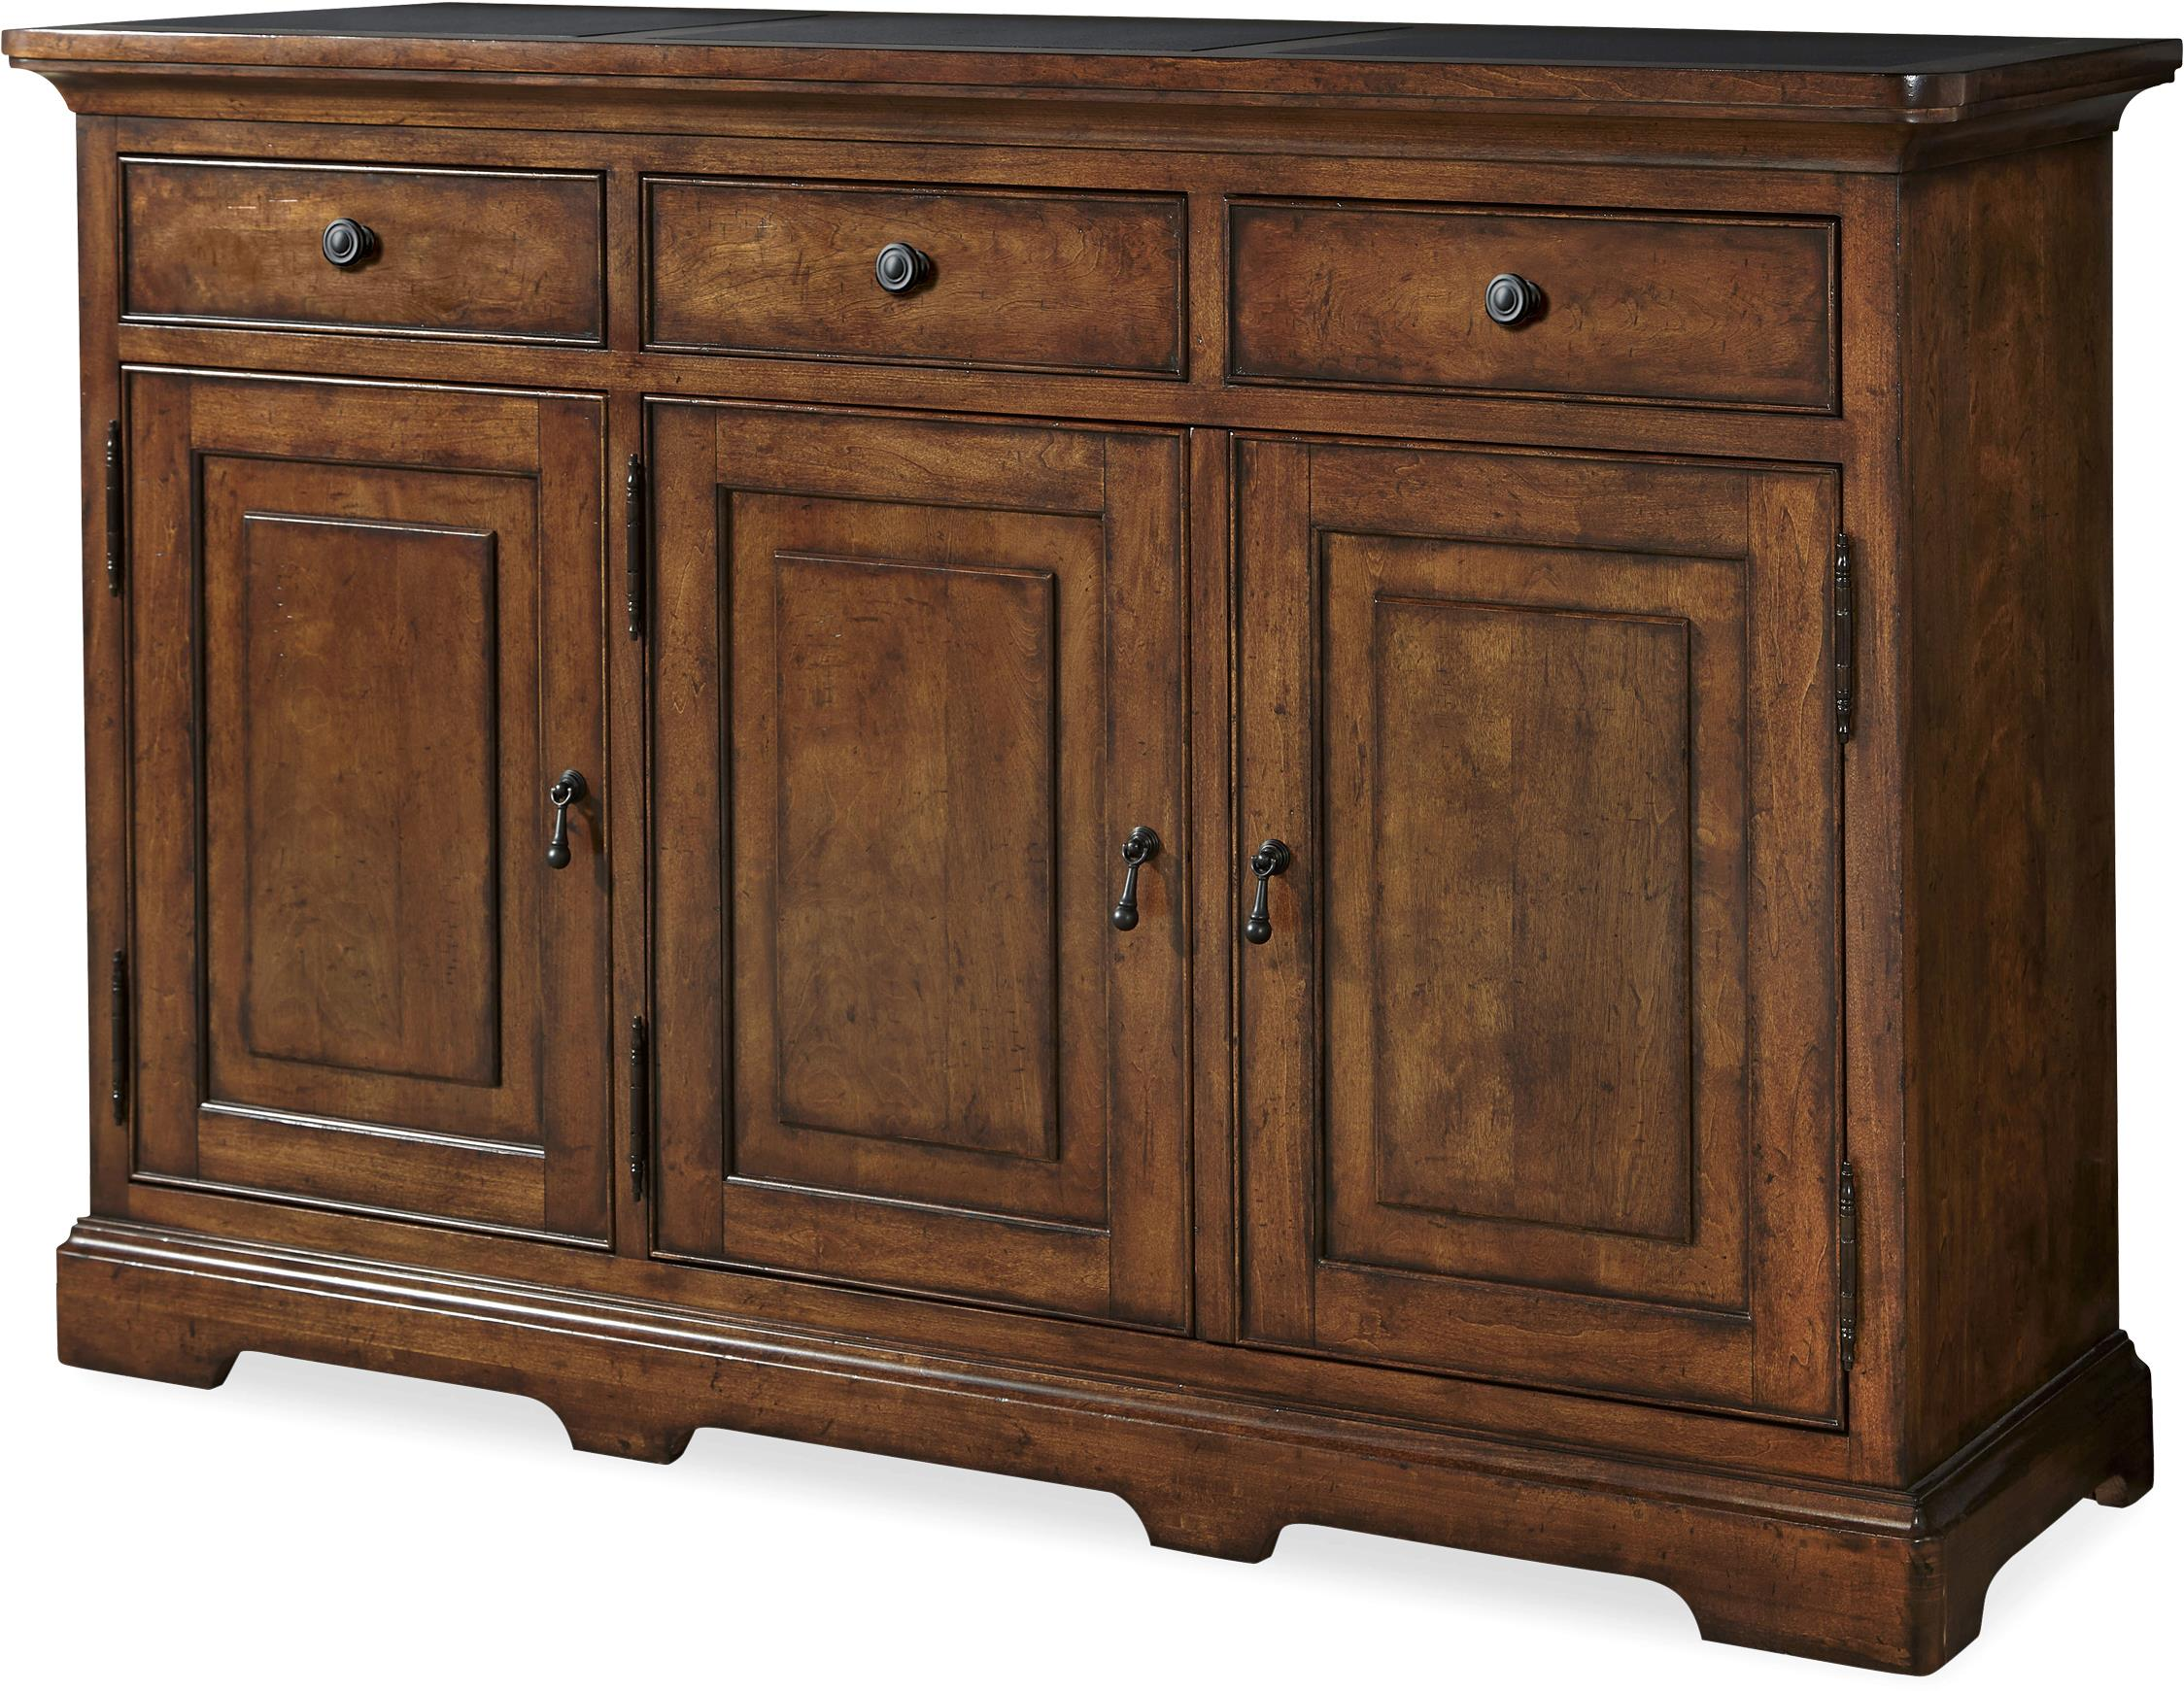 Paula Deen by Universal Dogwood Credenza - Item Number: 596679